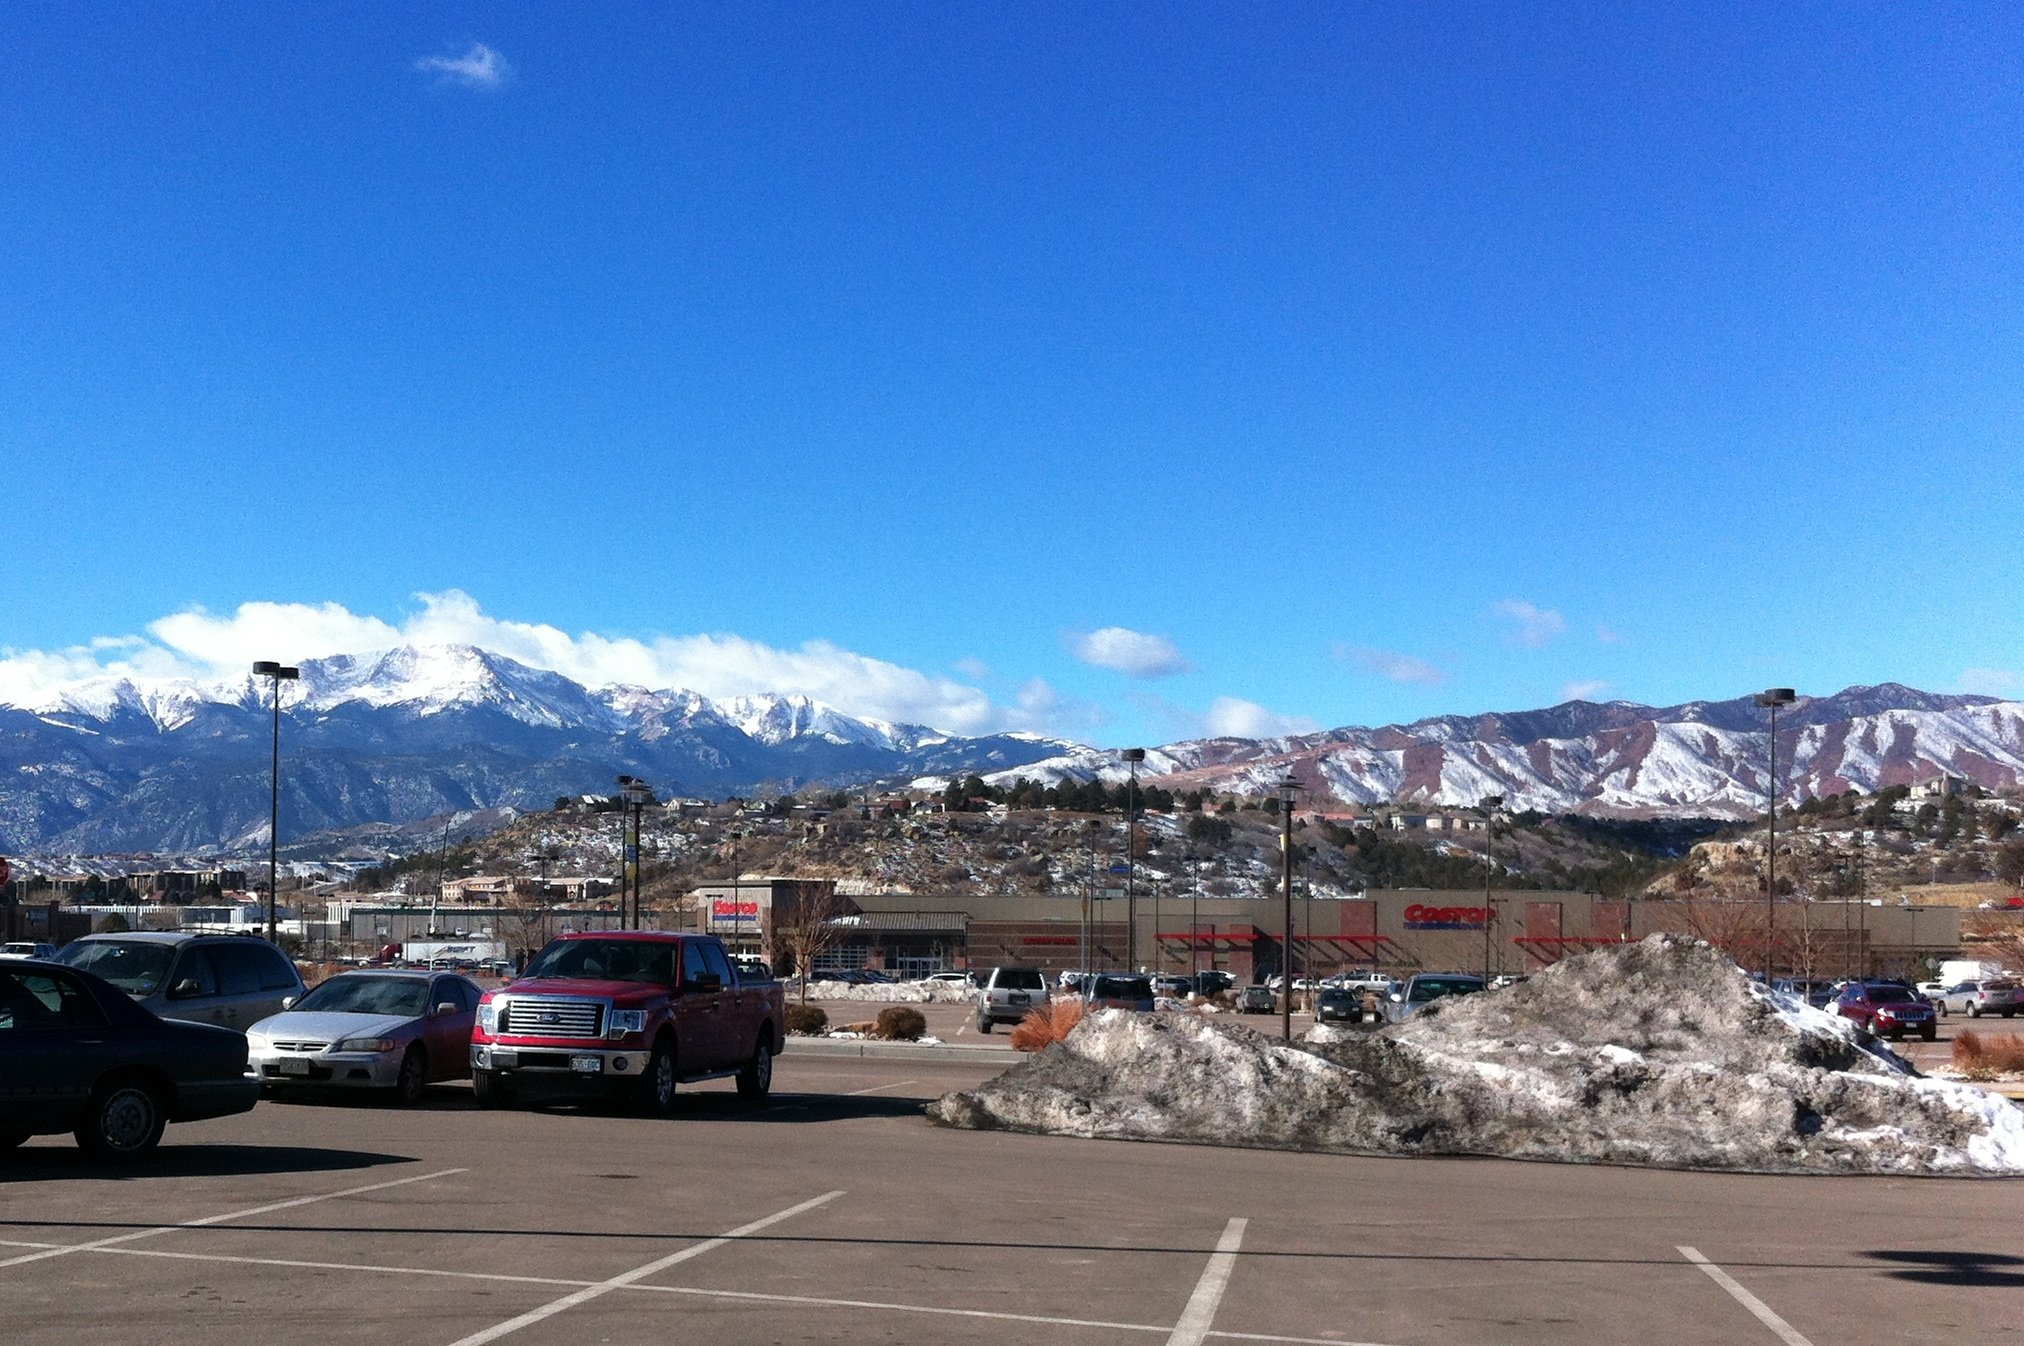 View of Pikes Peak from the University Village shopping center parking lot